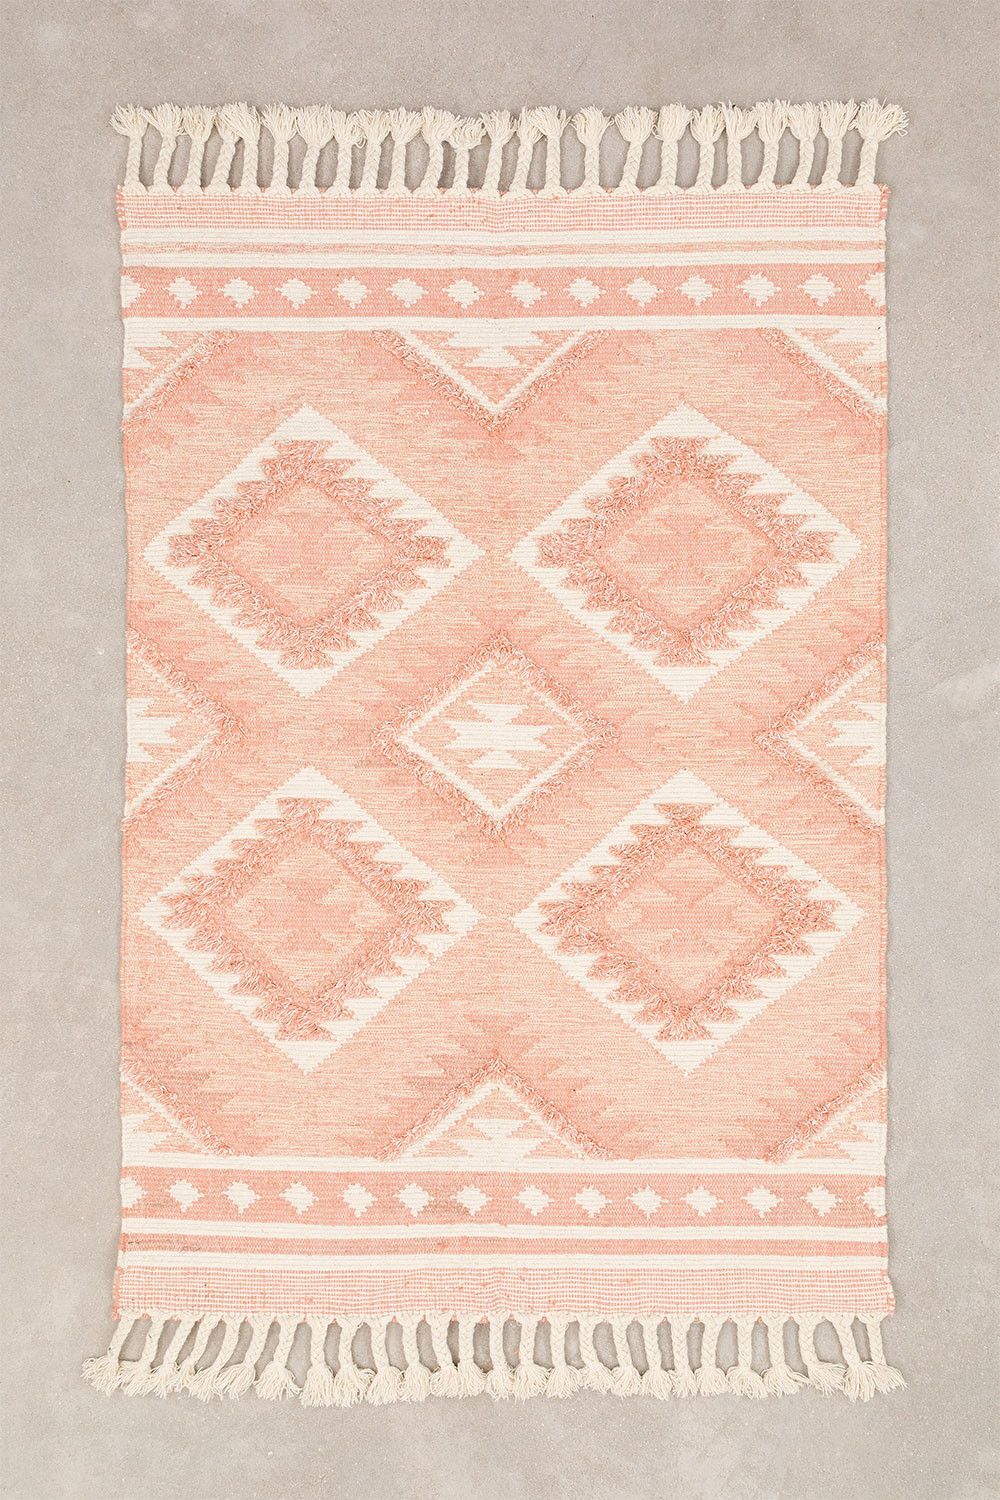 Wool and Cotton Rug (210x145 cm) Roiz, gallery image 1